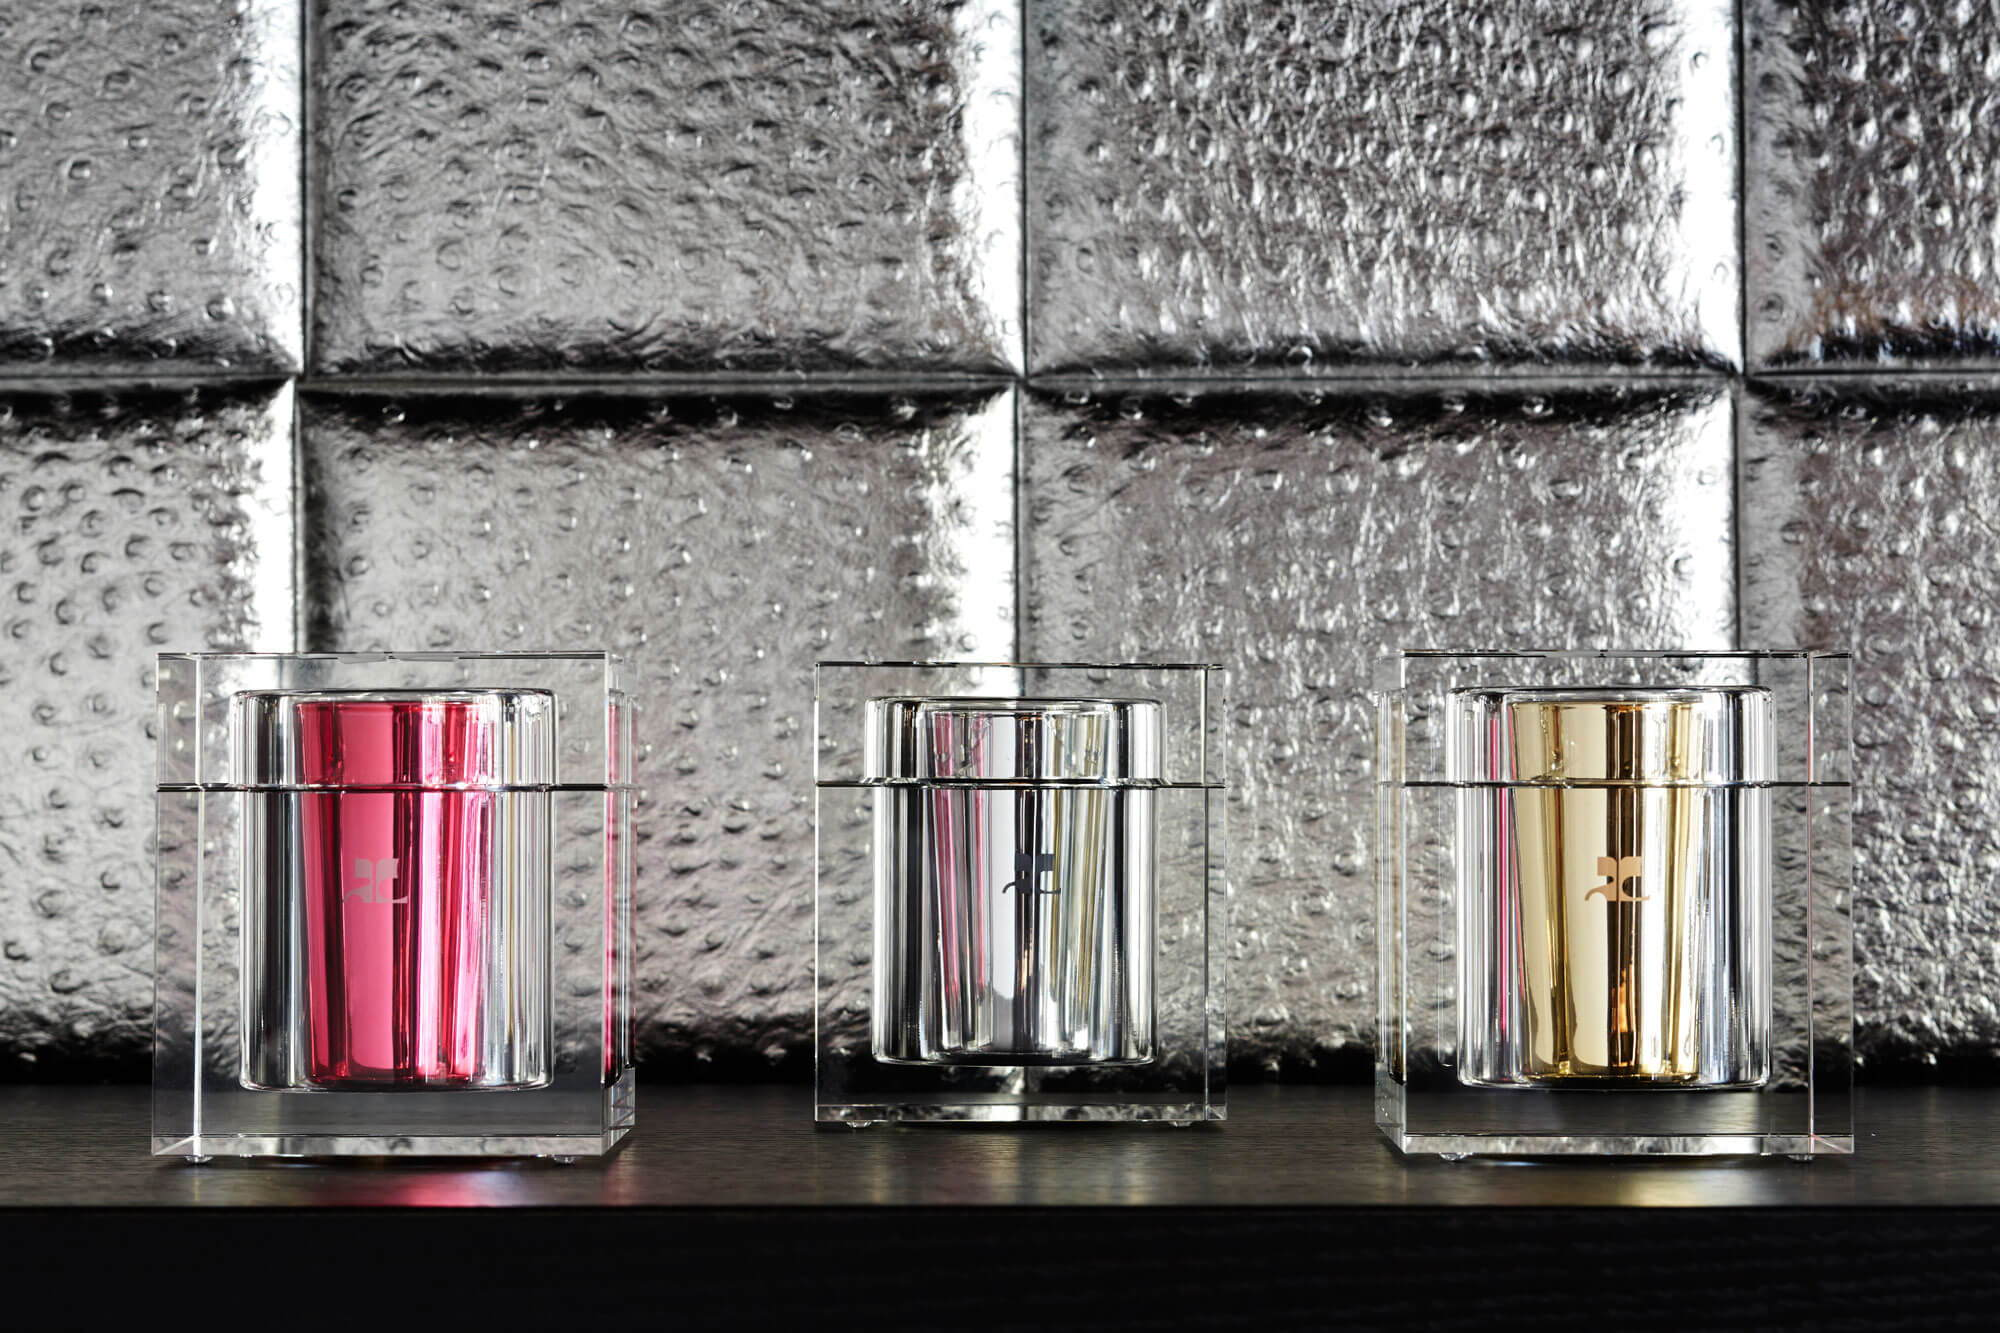 limited edition cobranding courreges by Welton London, scented candles made in France, cubic design, unique pieces of crystals